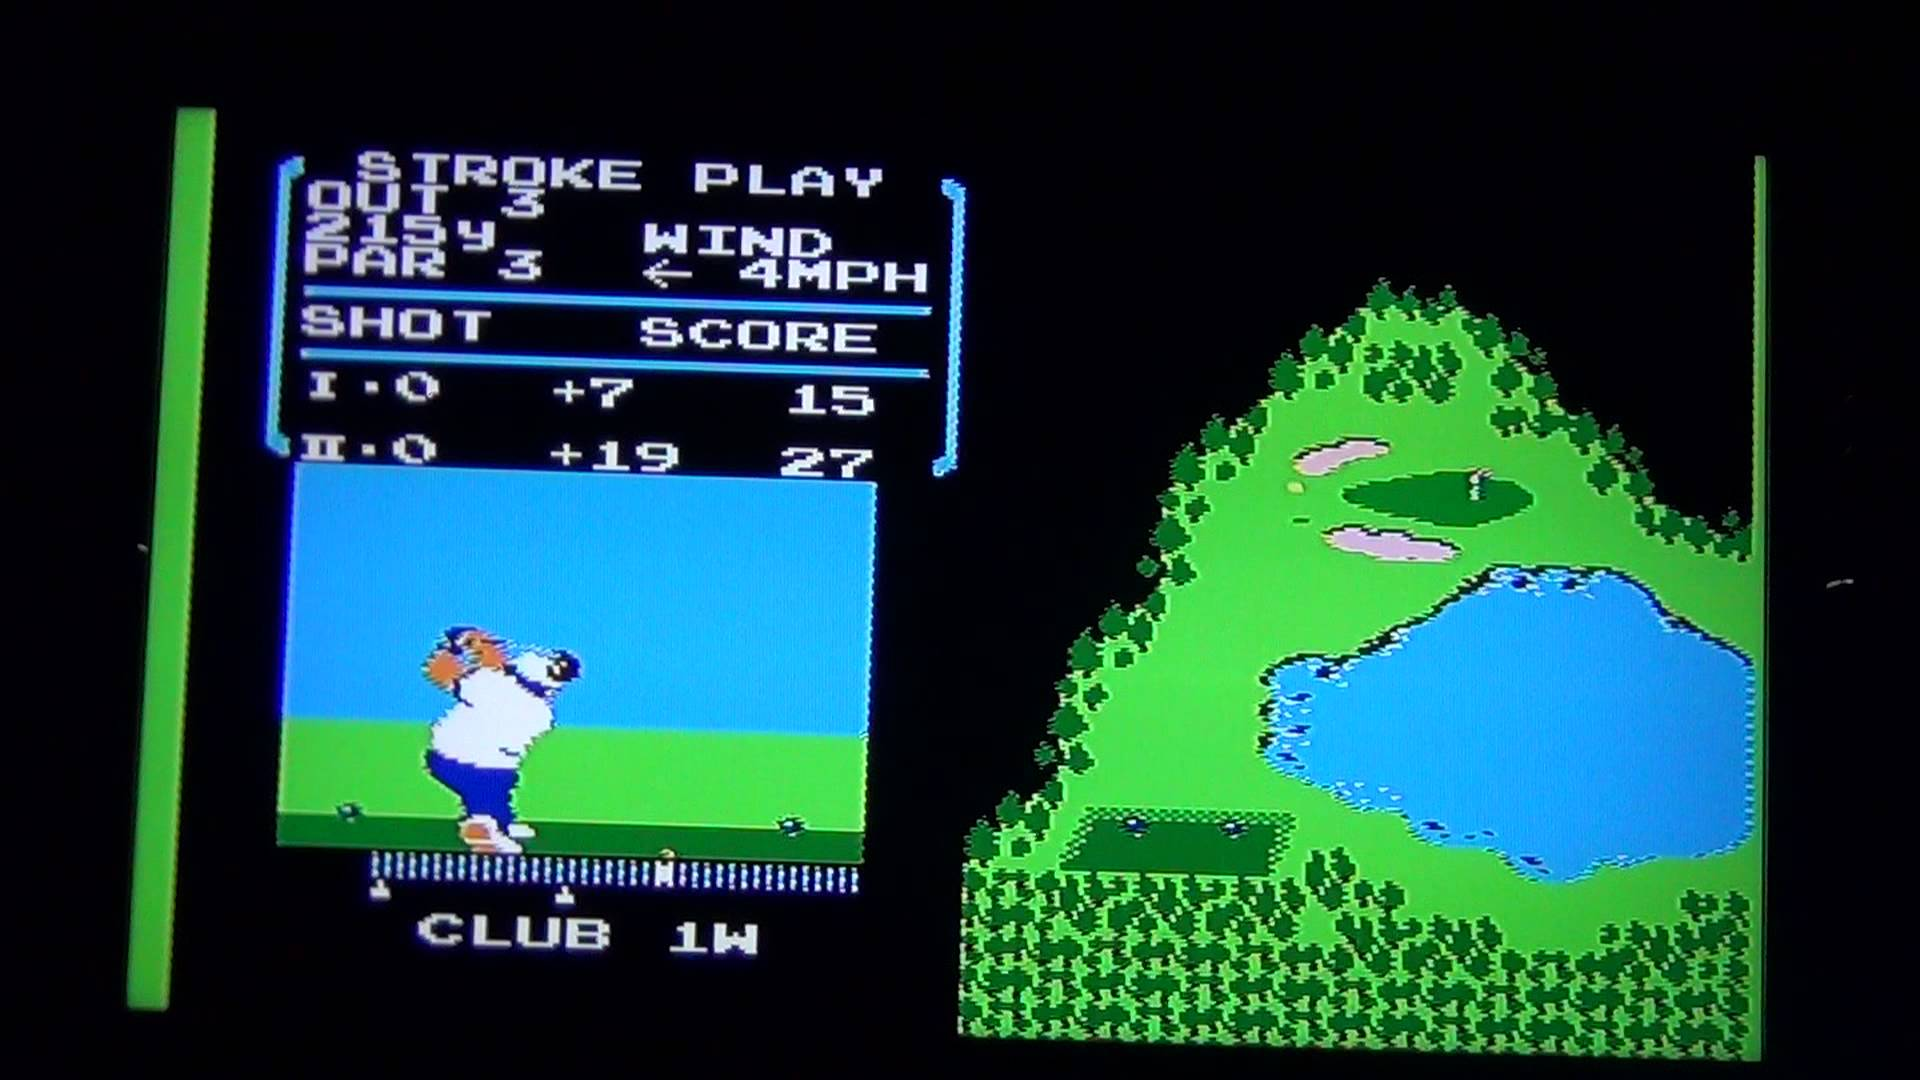 modder-team-claims-every-nintendo-switch-has-a-copy-of-nes-golf-with-motion-controls-hidden-on-the-console-social.jpg